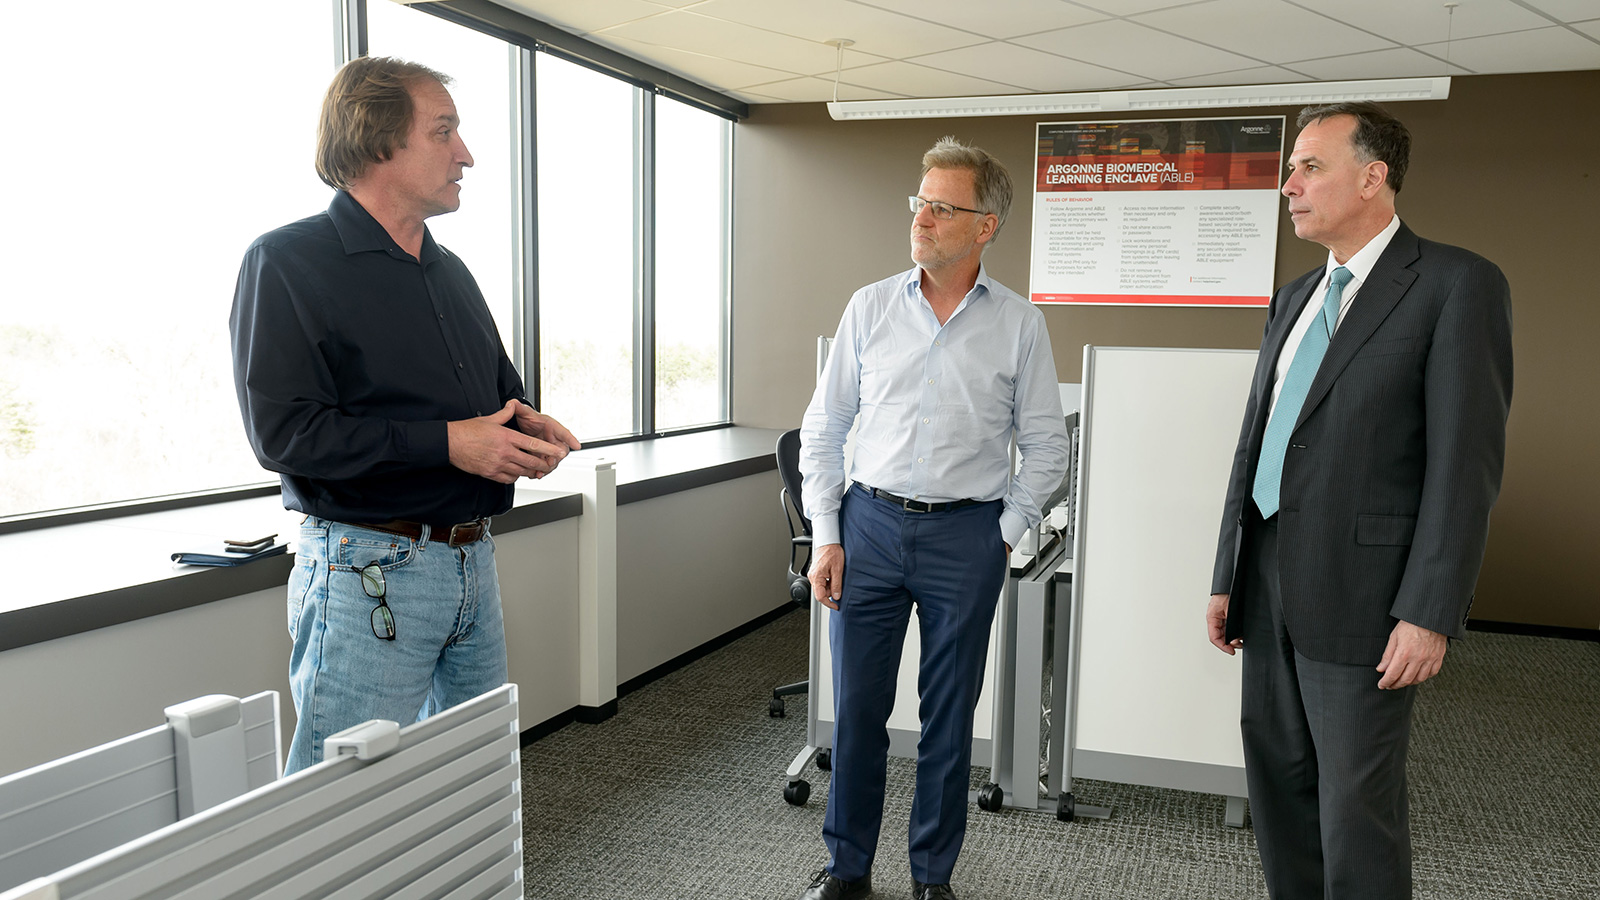 Dimitri Kusnezov (right) visits the new Argonne Biomedical Learning Enclave (ABLE) with Tom Brettin (left) and Ian Foster (middle).